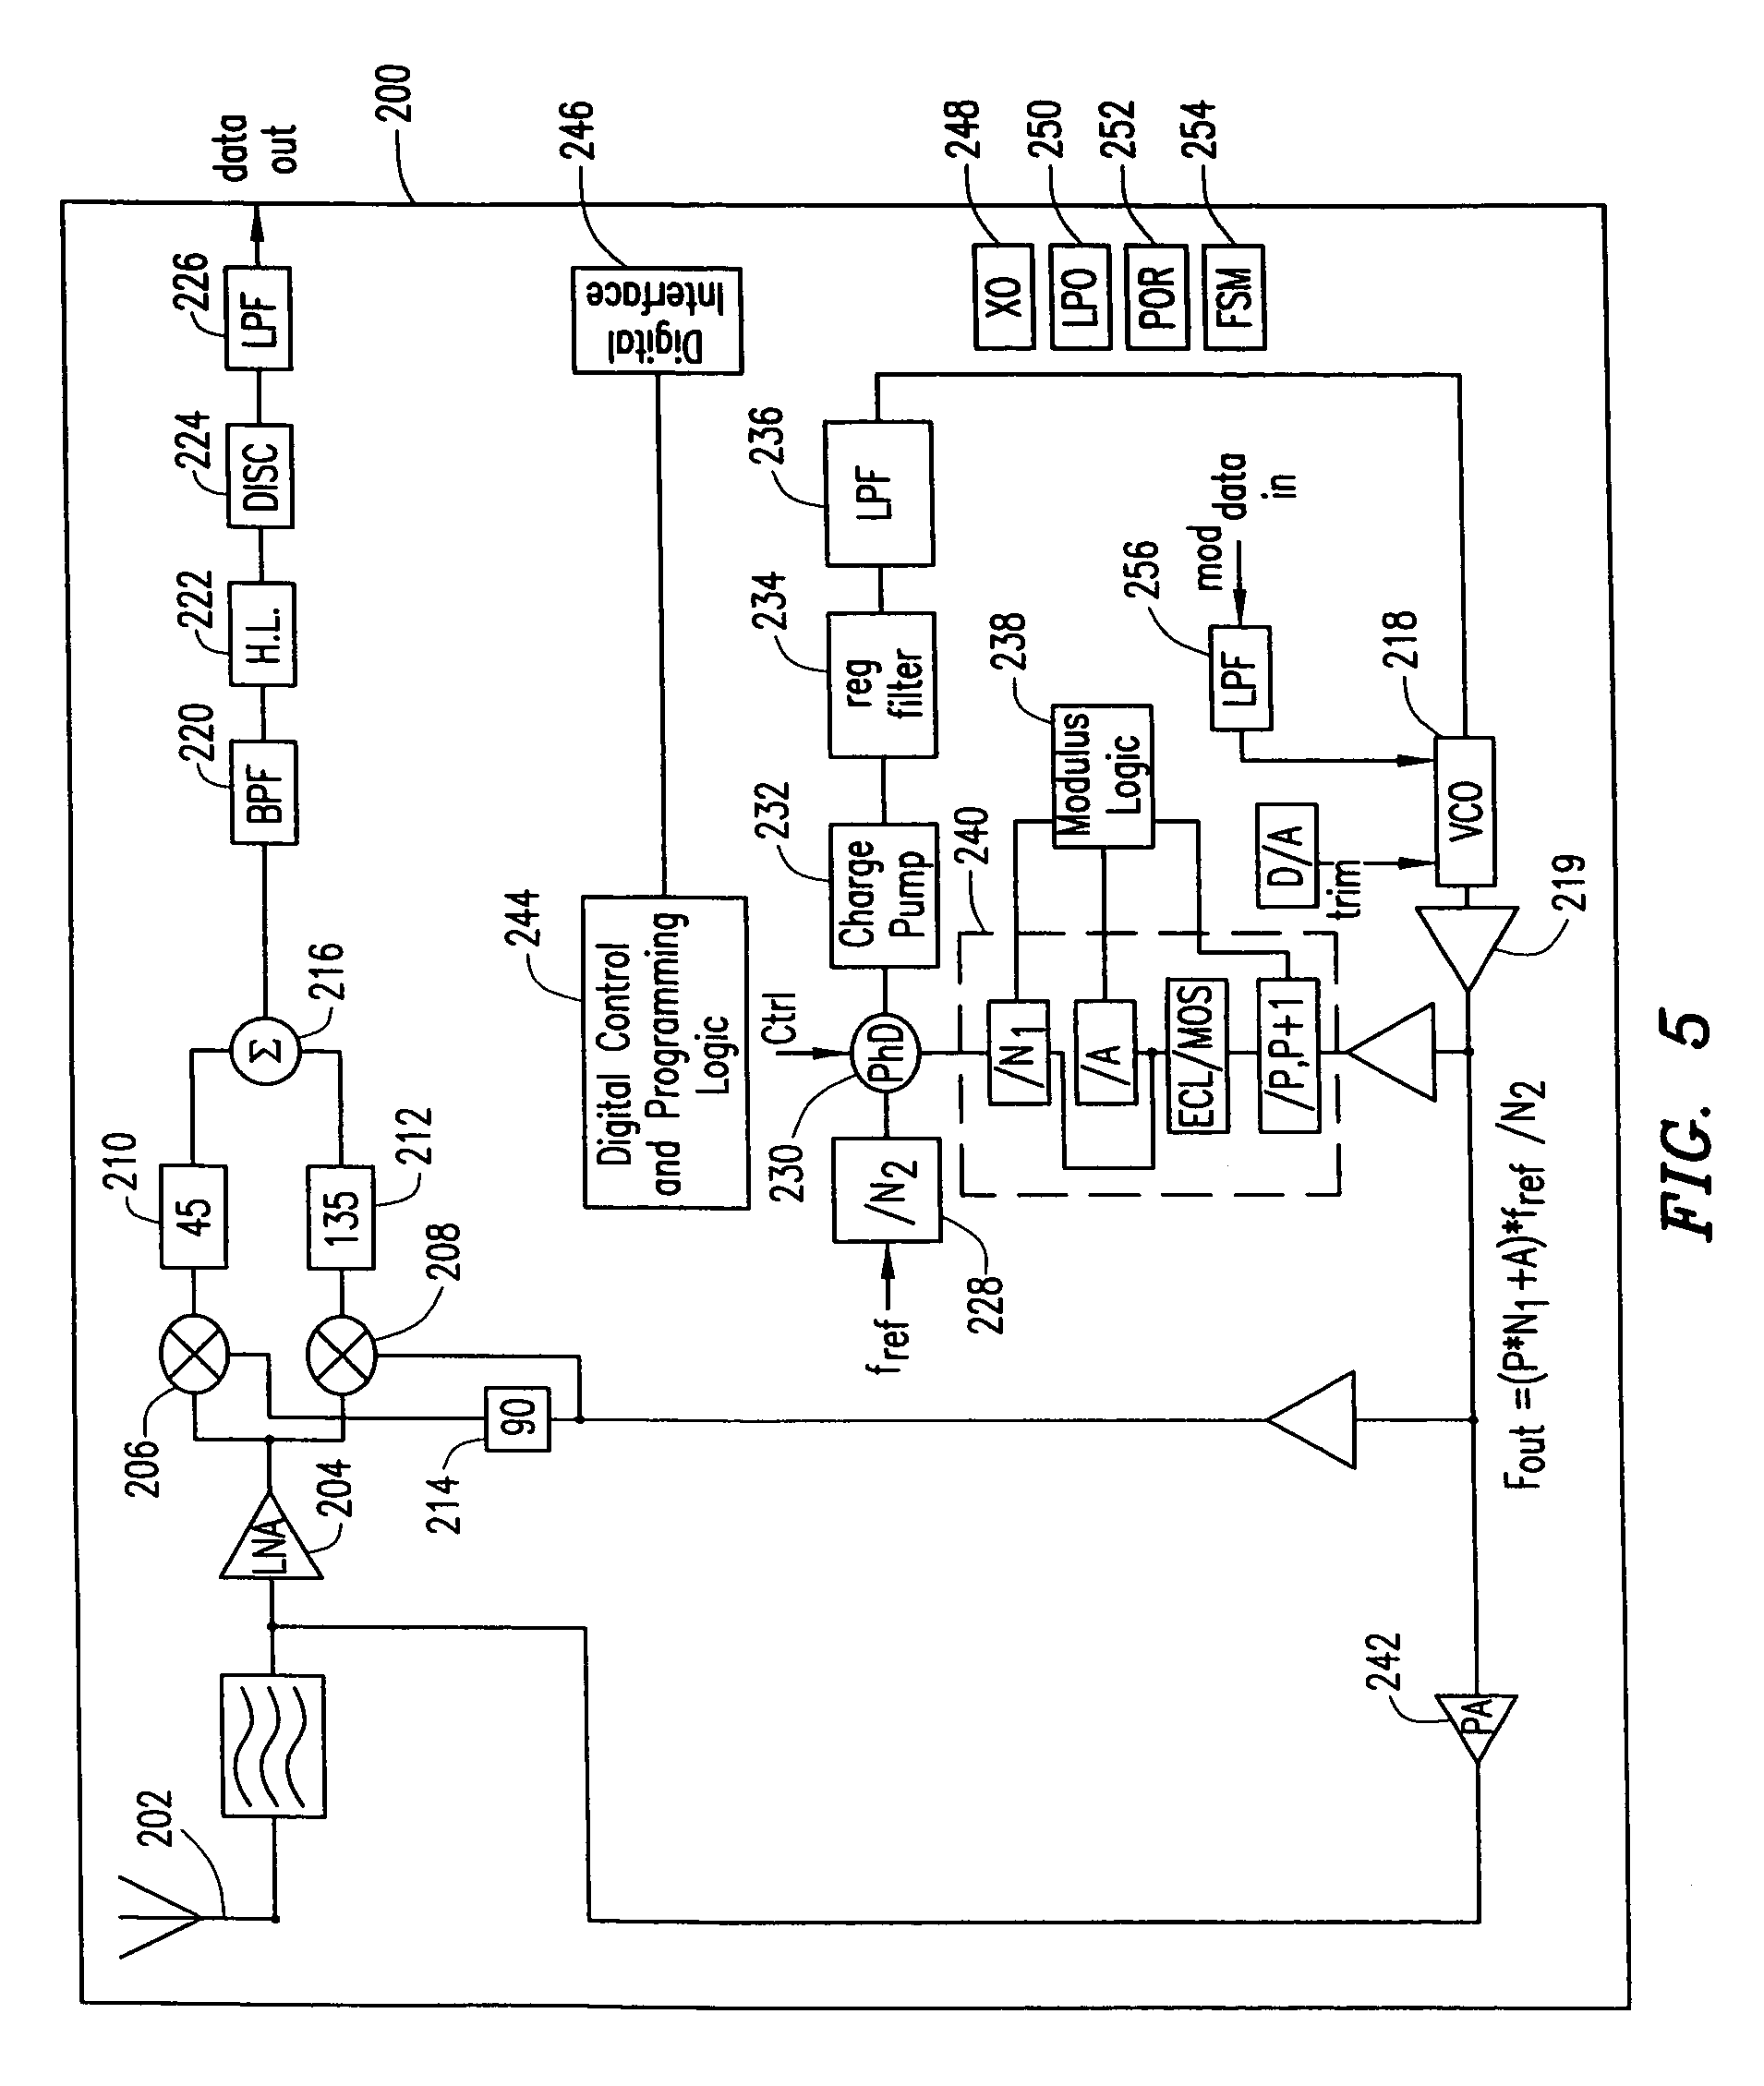 patent us7068171 - radio transceiver on a chip